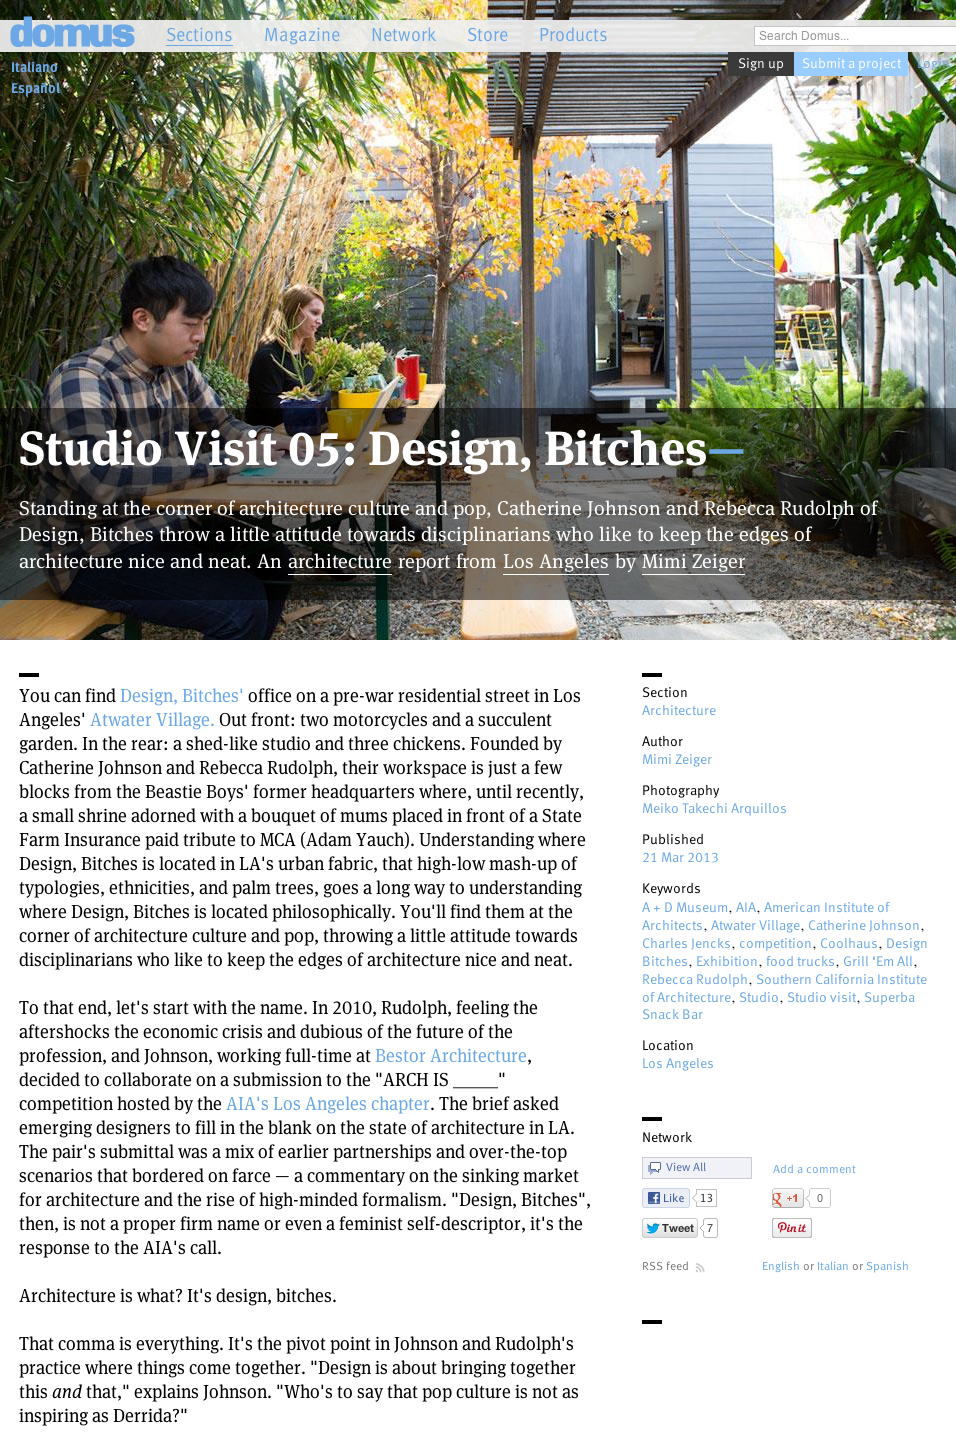 Studio Visit 05-Design, Bitches - Architecture - Domus (20130321).png